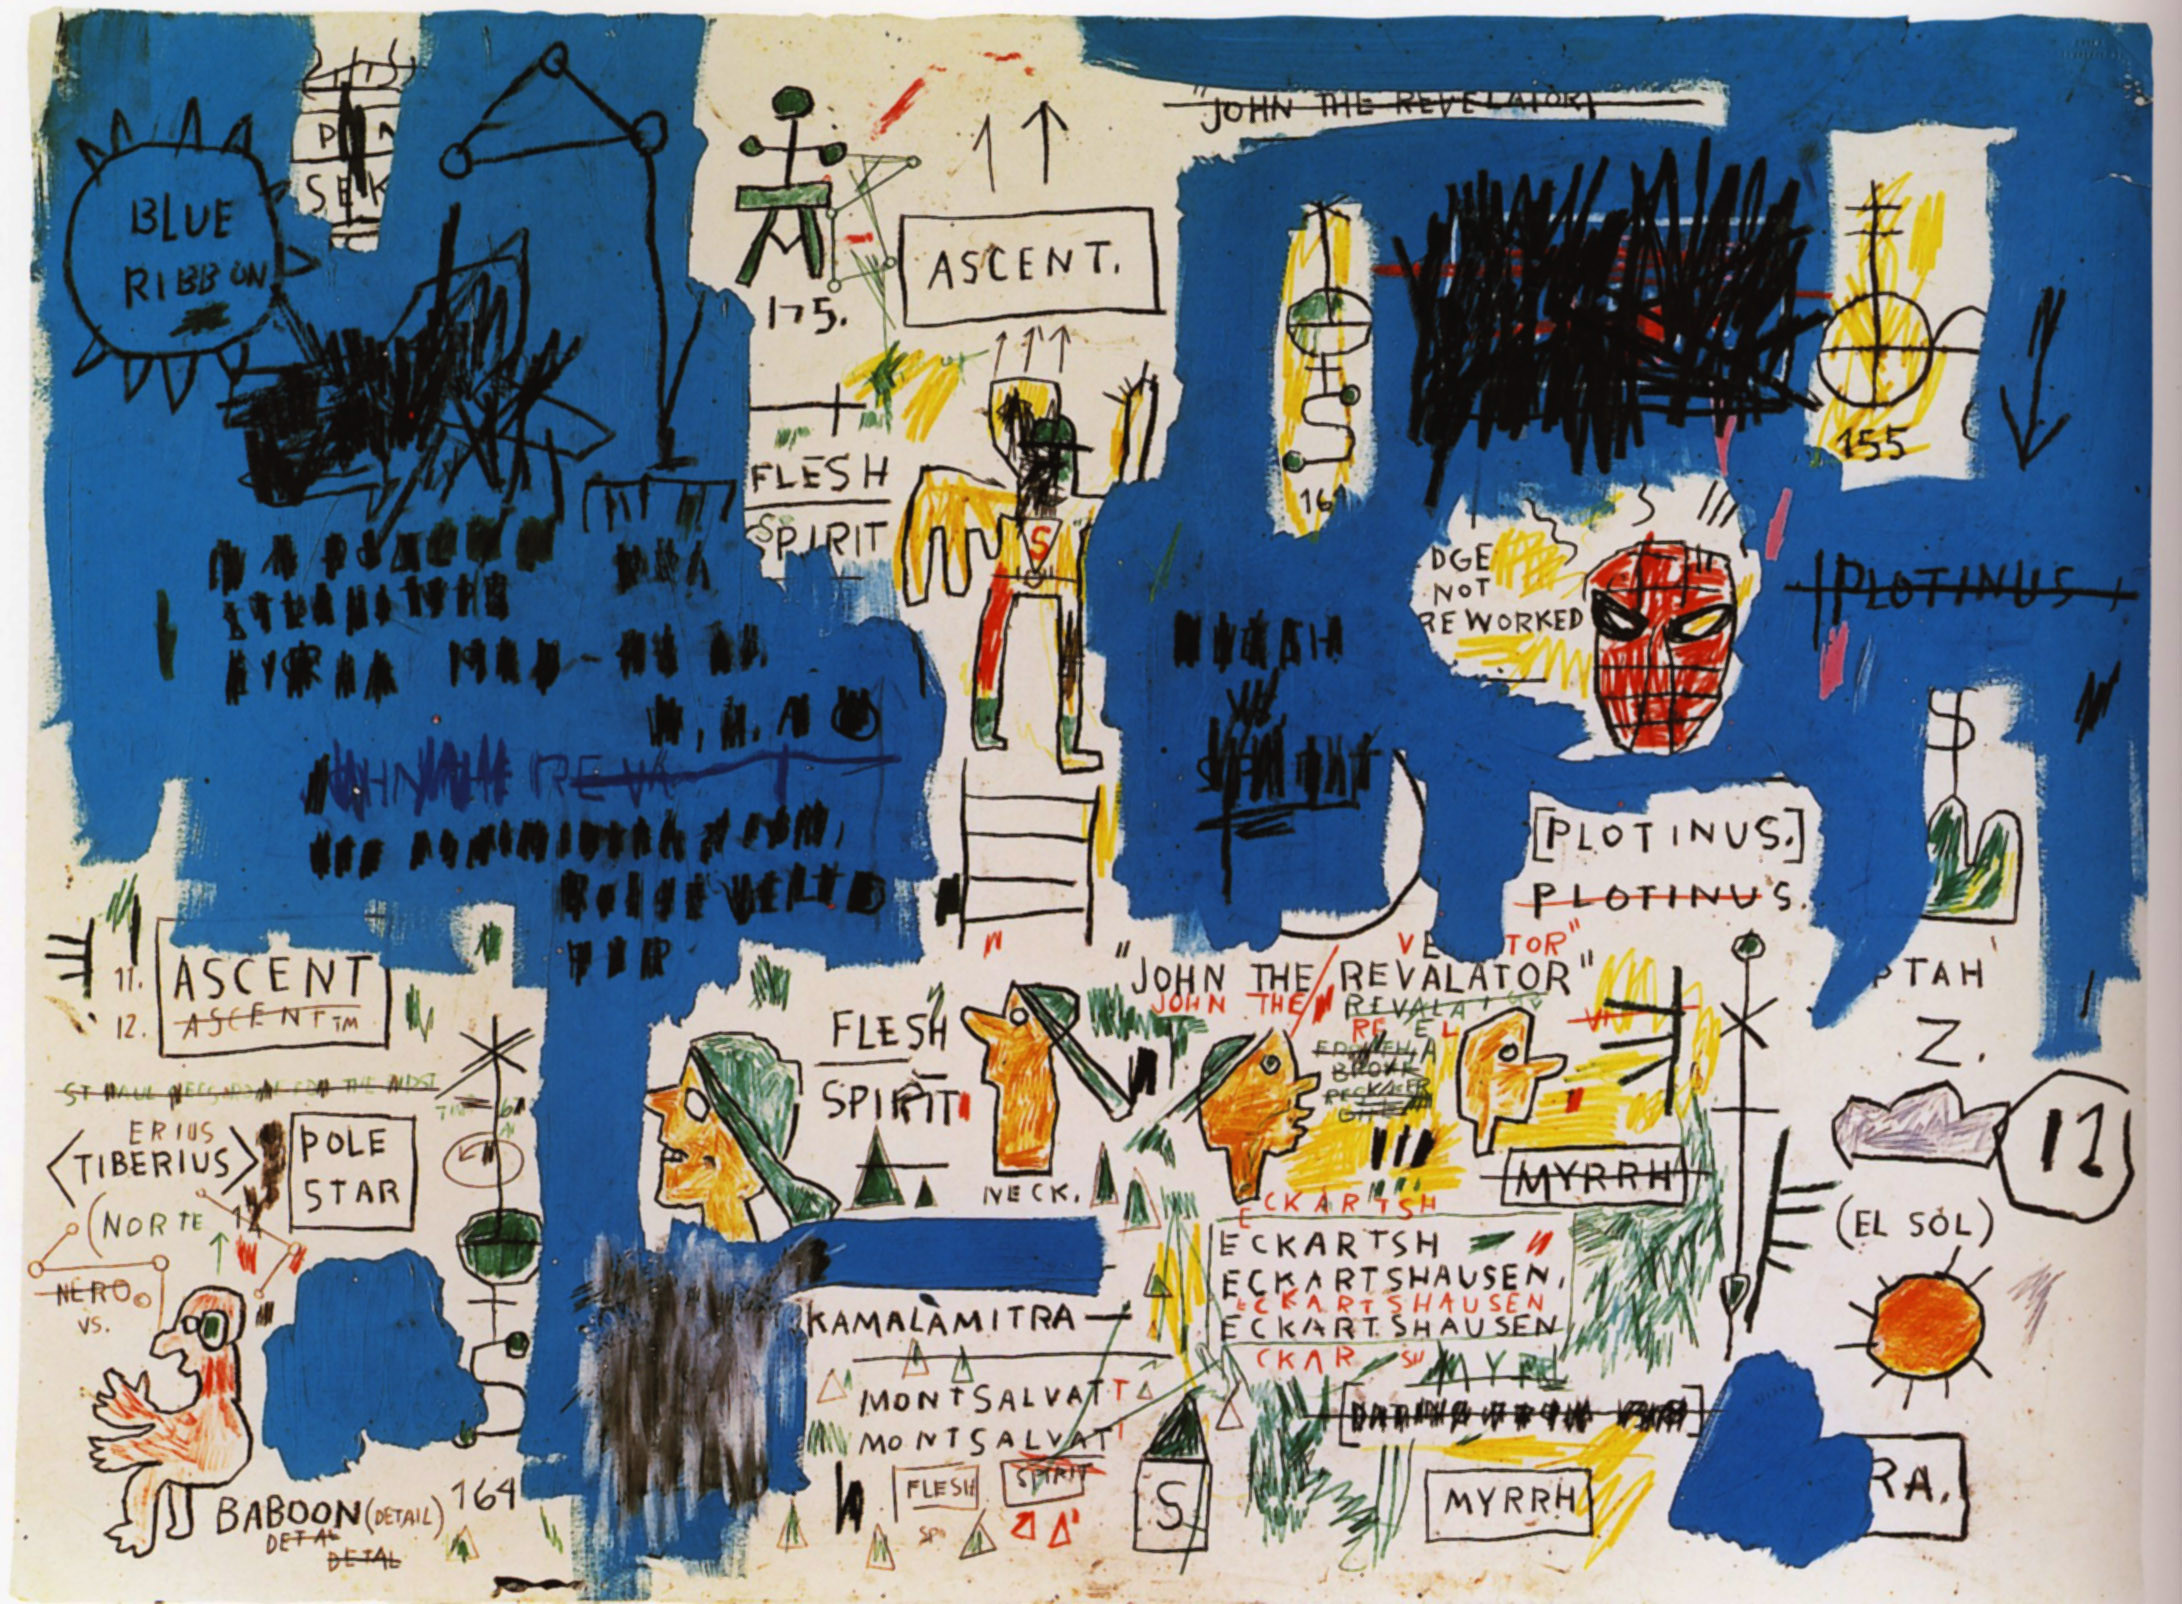 Jean-Michel Basquiat, Ascent on ArtStack